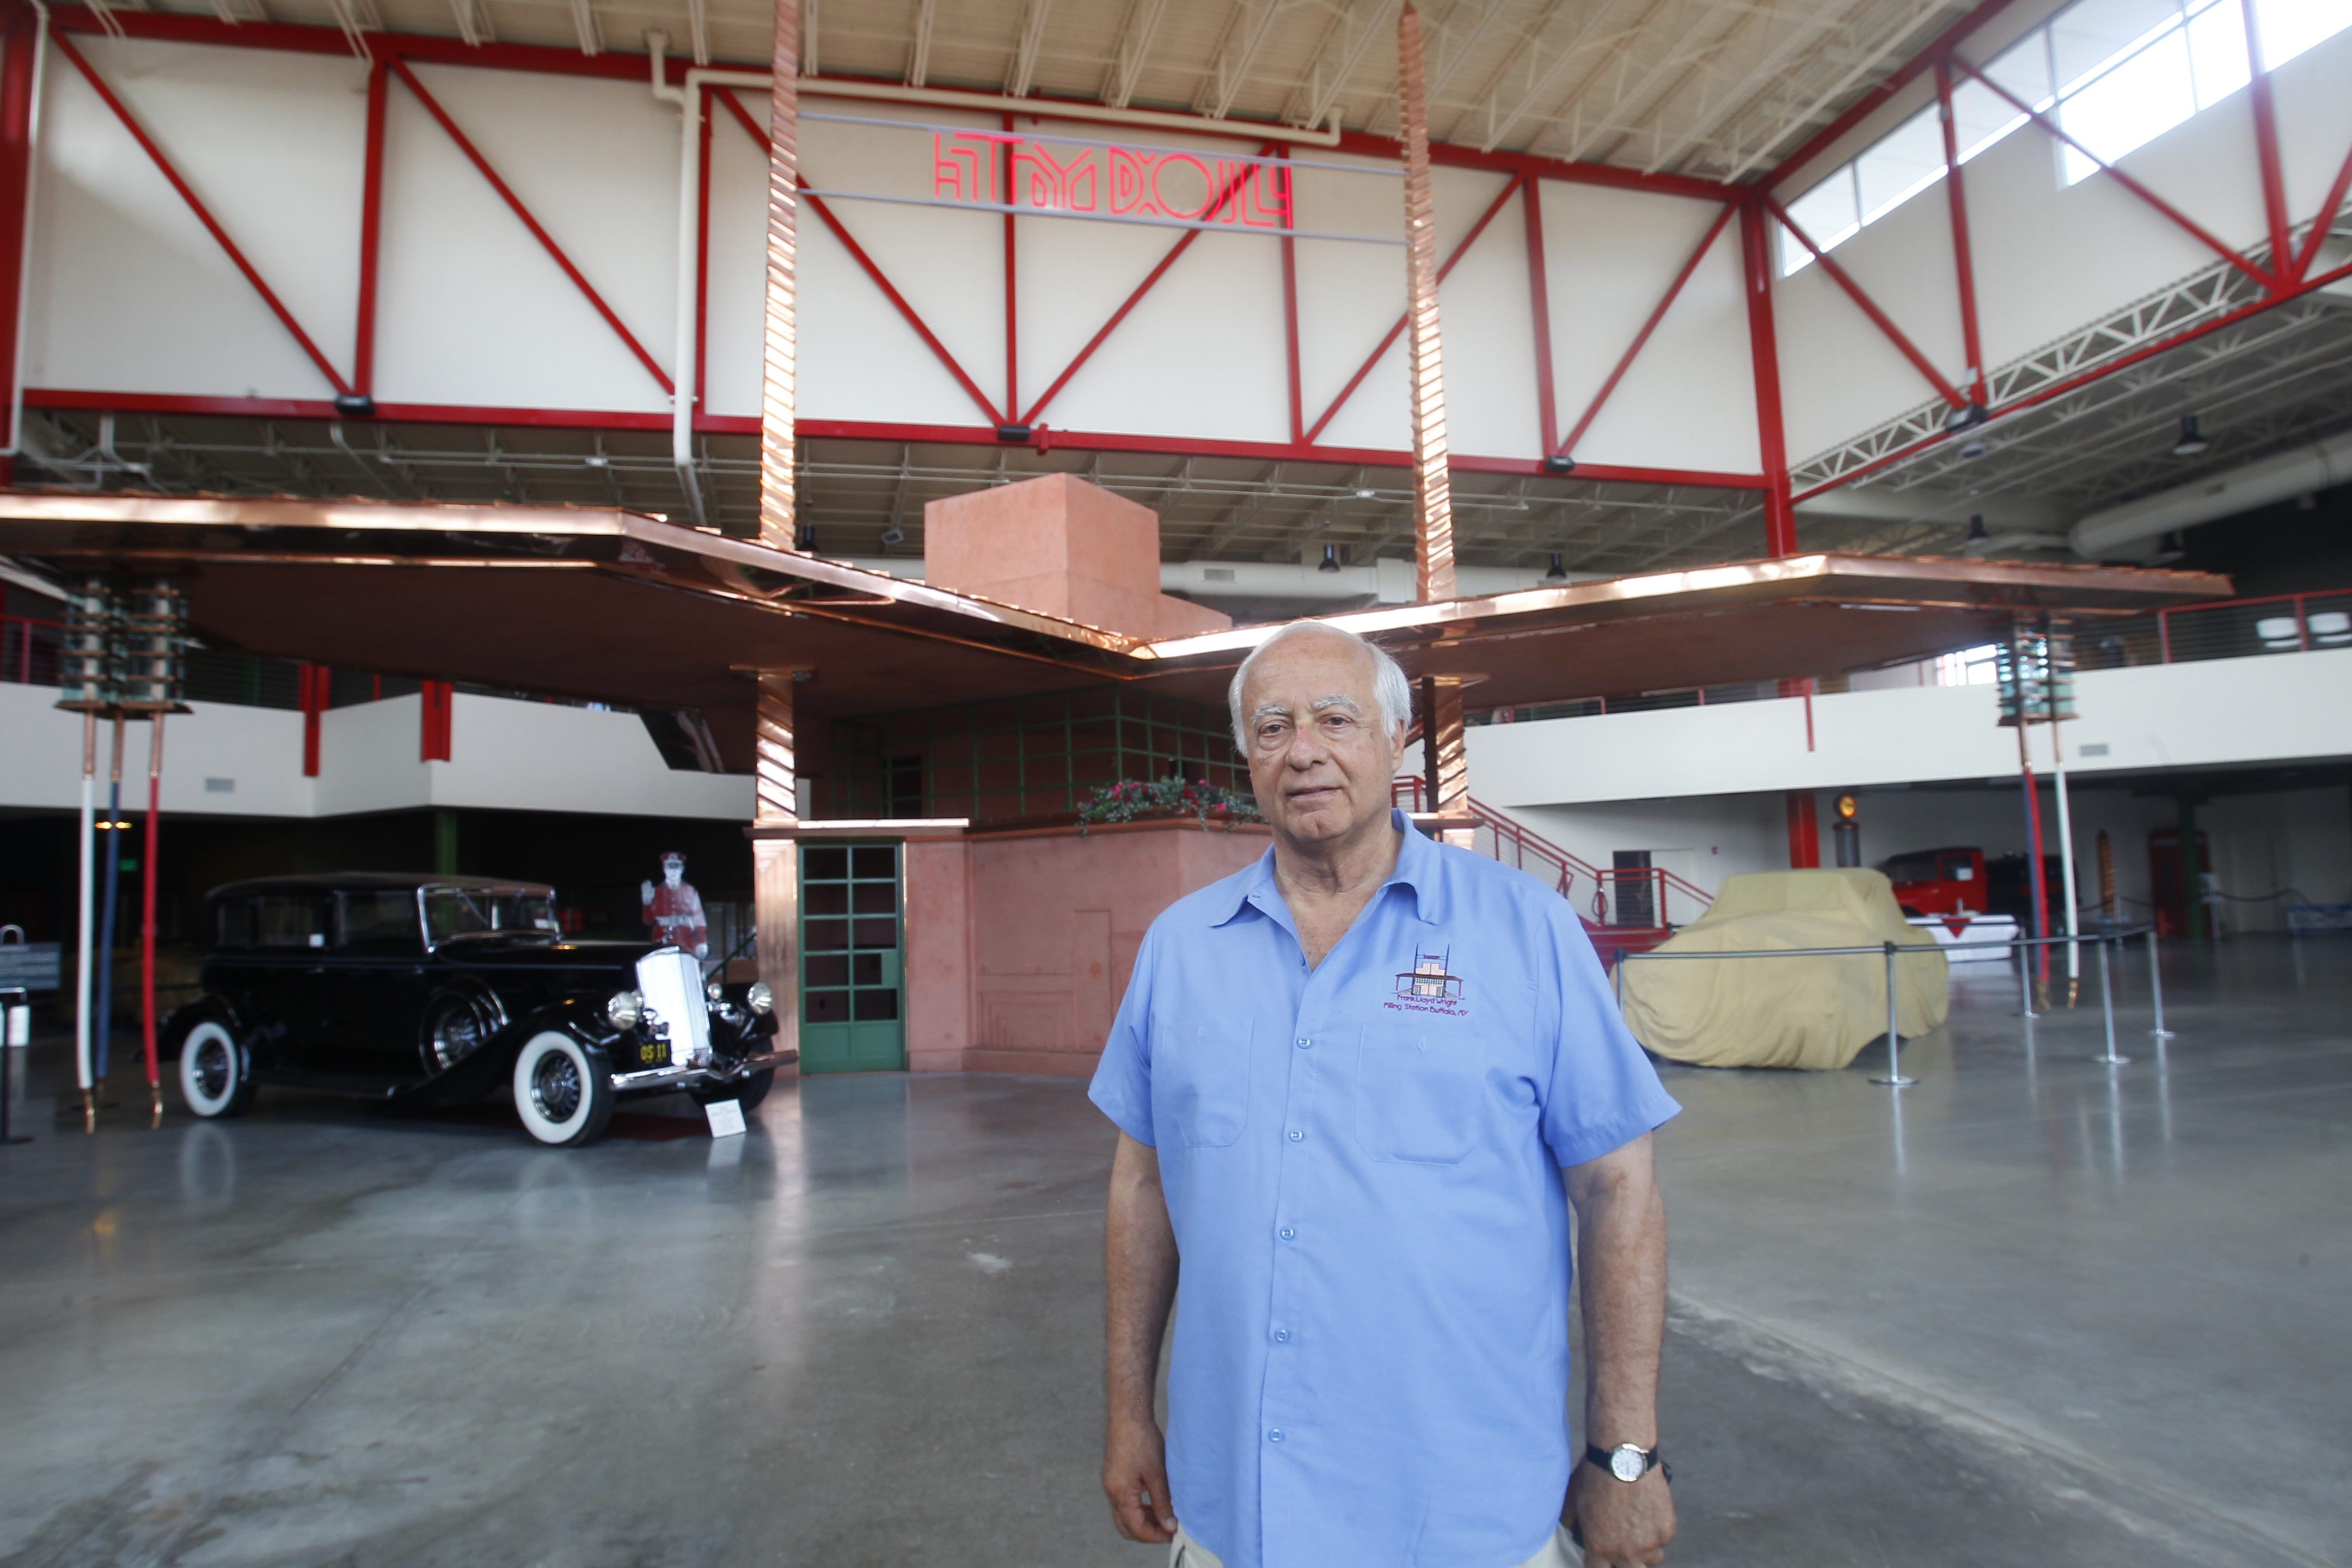 James Sandoro, Founder and Executive Director at the Buffalo Transportation Pierce-Arrow Museum's with the Frank Lloyd Wright-designed filling station behind him opens Friday at The Buffalo Transportation Pierce-Arrow Museum, corner of Seneca Street and Michigan Avenue  on Thursday, June 26, 2014 in Buffalo, NY.  (John Hickey/Buffalo News)